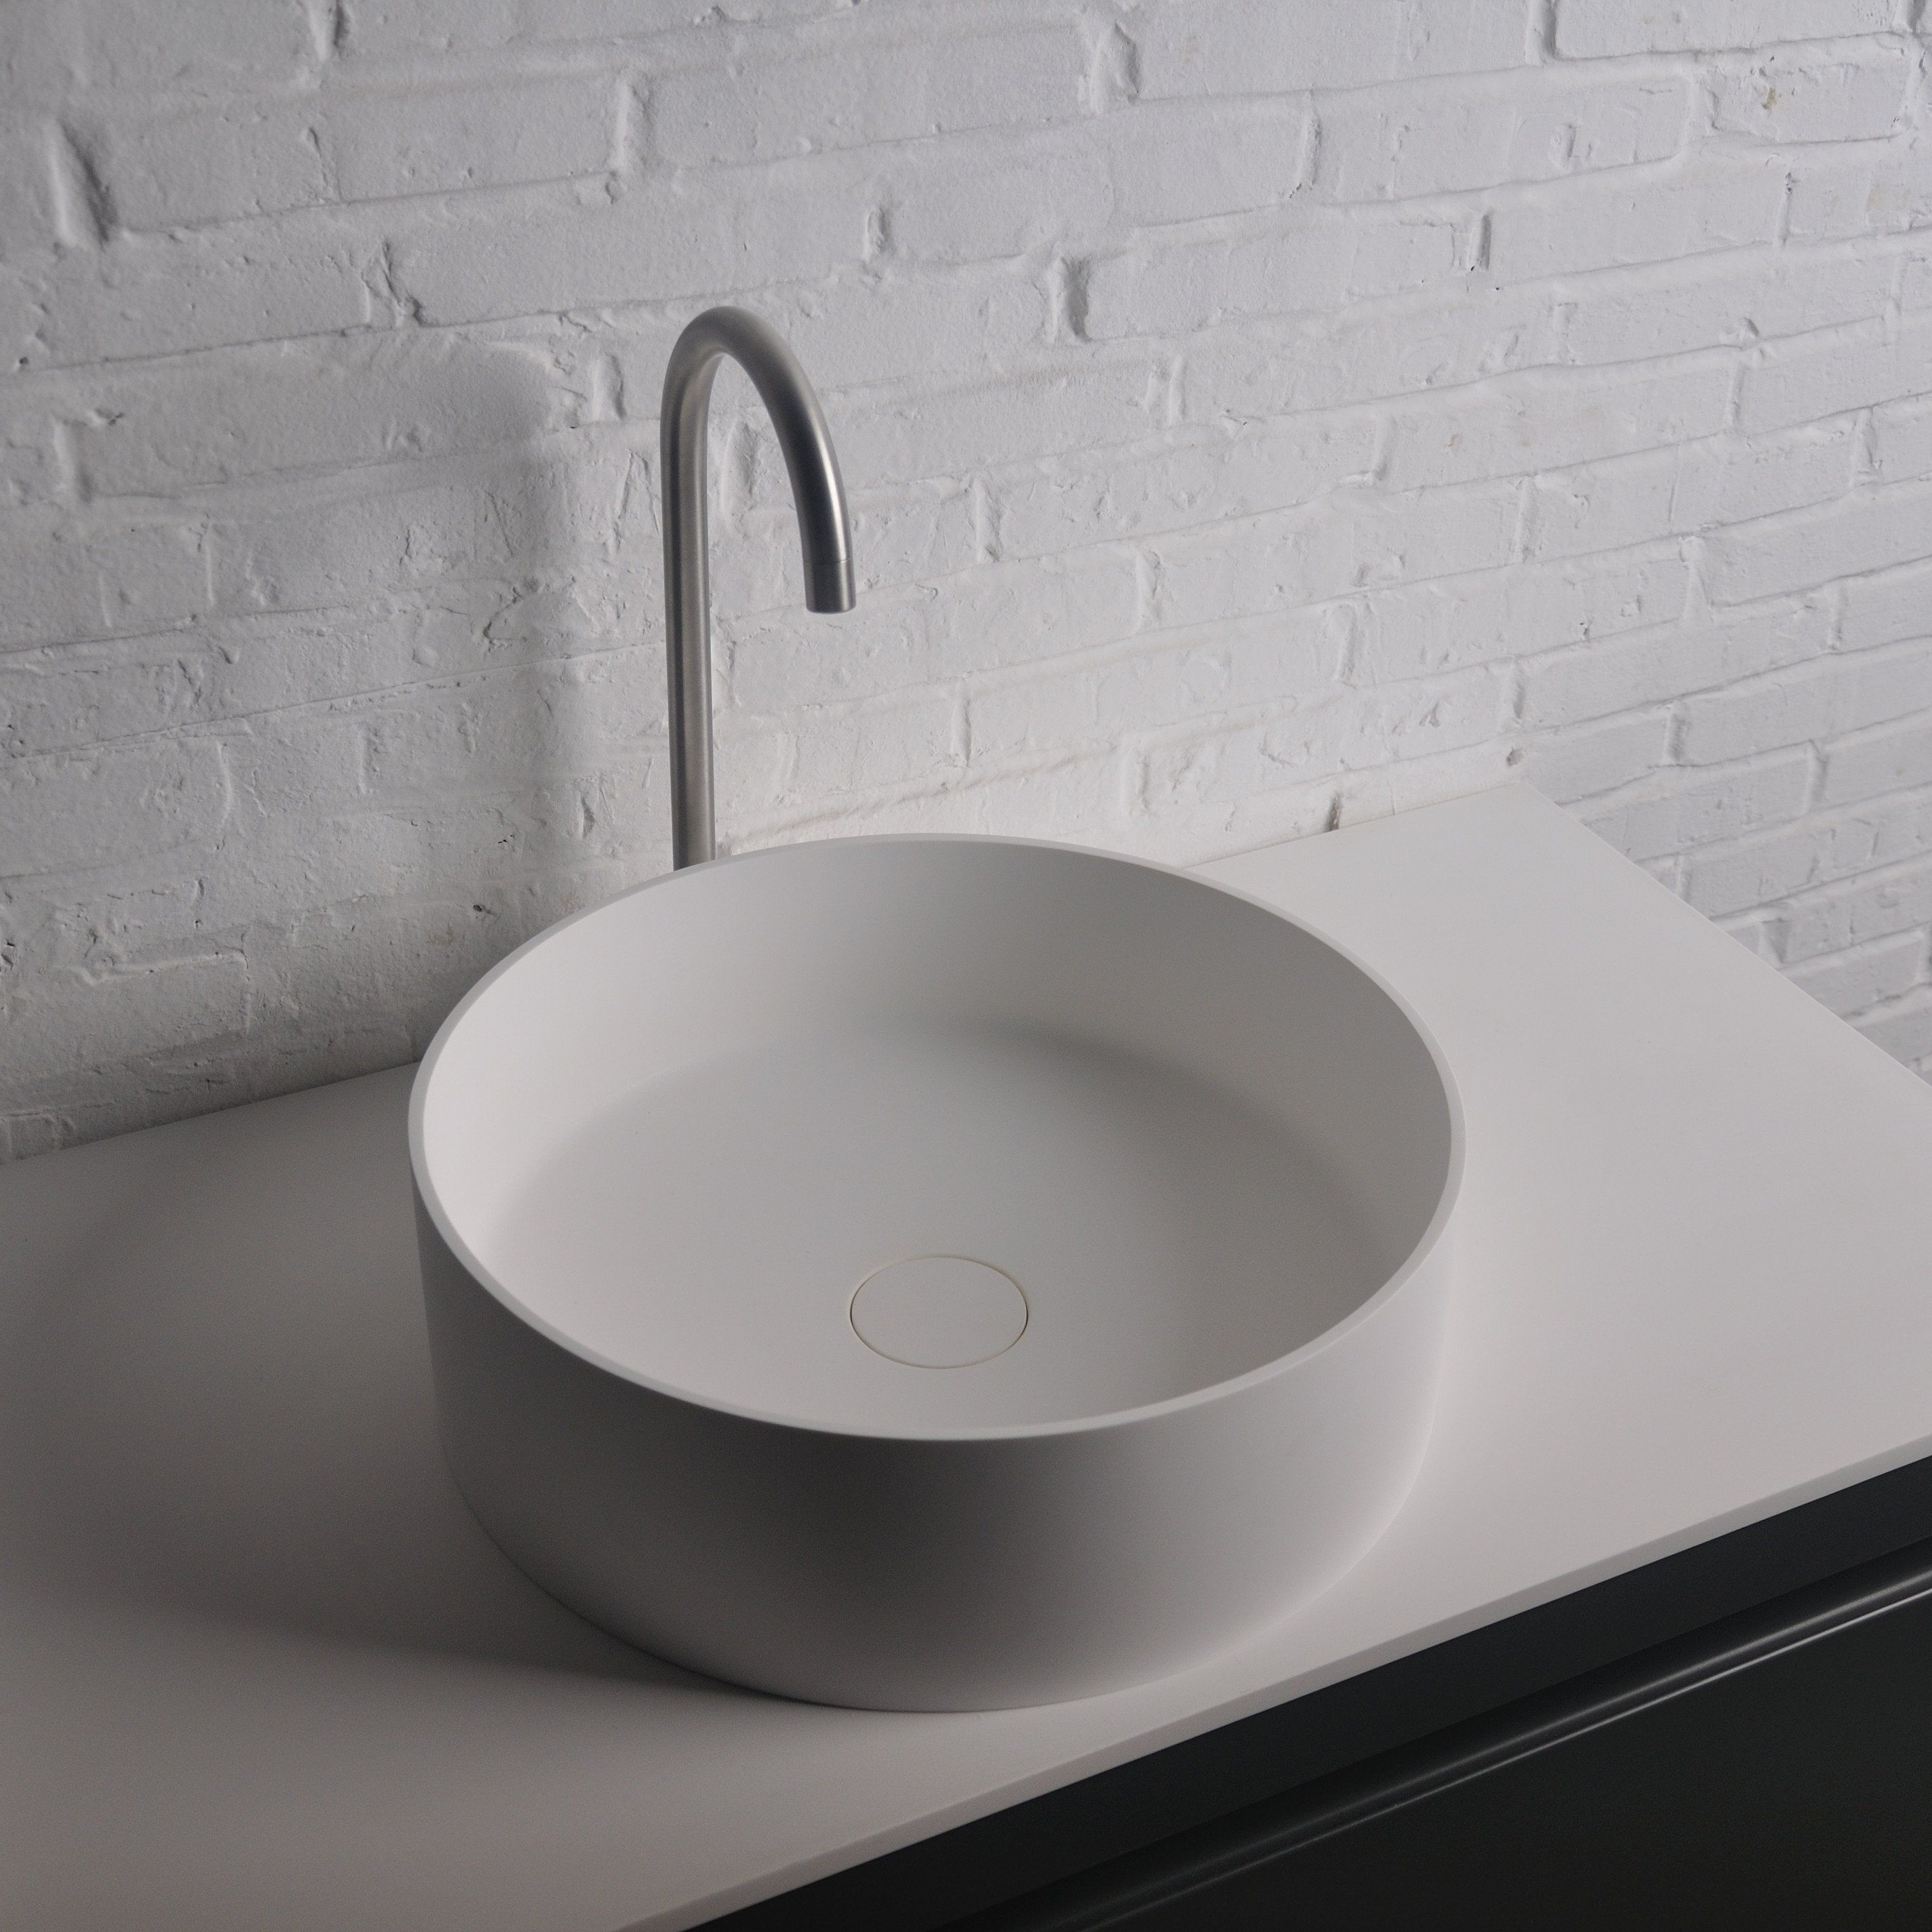 Ideavit Thin Round Solid Surface Vessel Sink Bowl Above Counter Sink  Lavatory For Vanity Cabinet